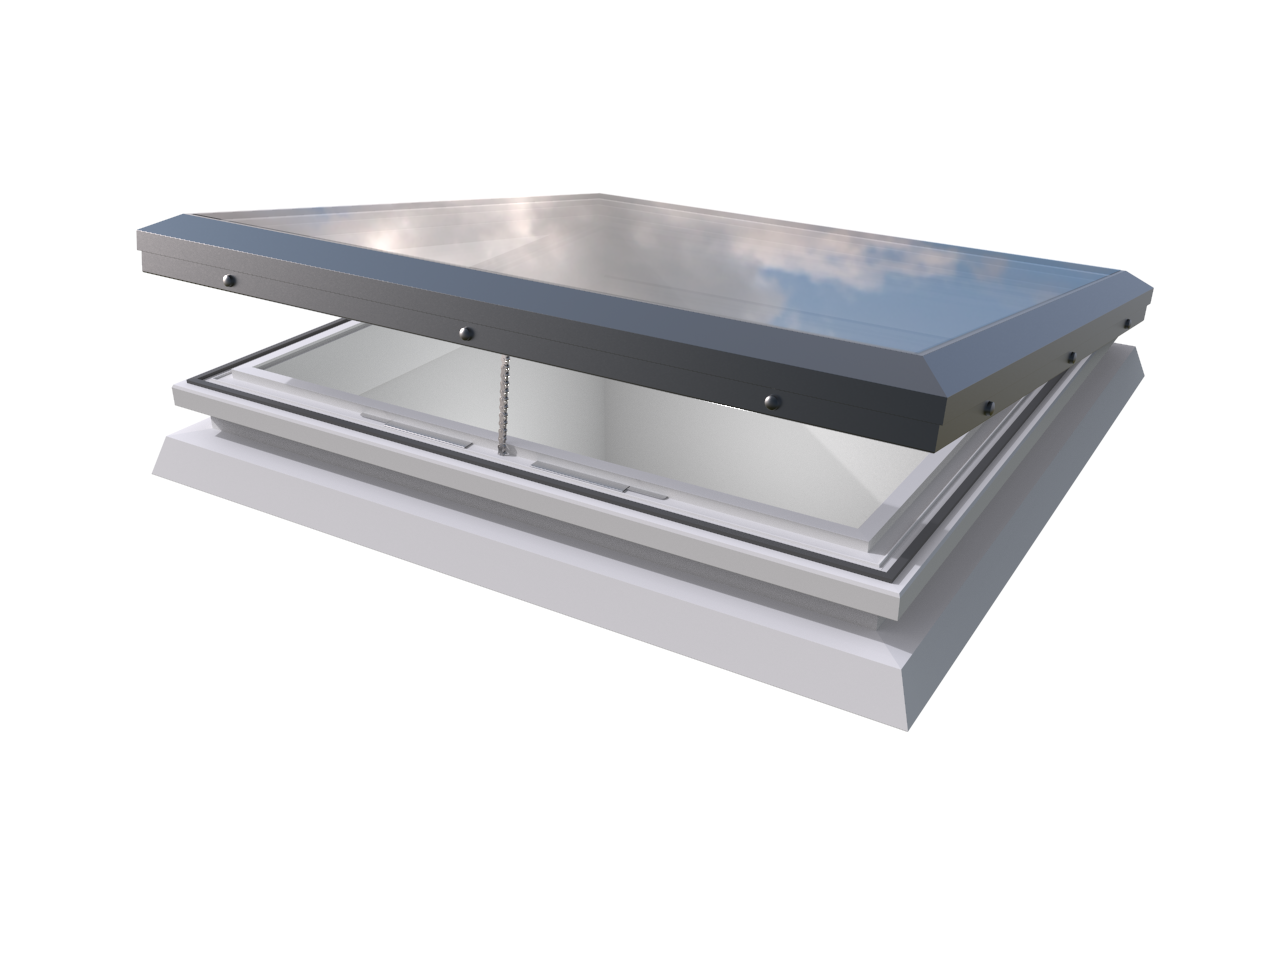 Mardome Glass Trade Rooflight Electric Hinge